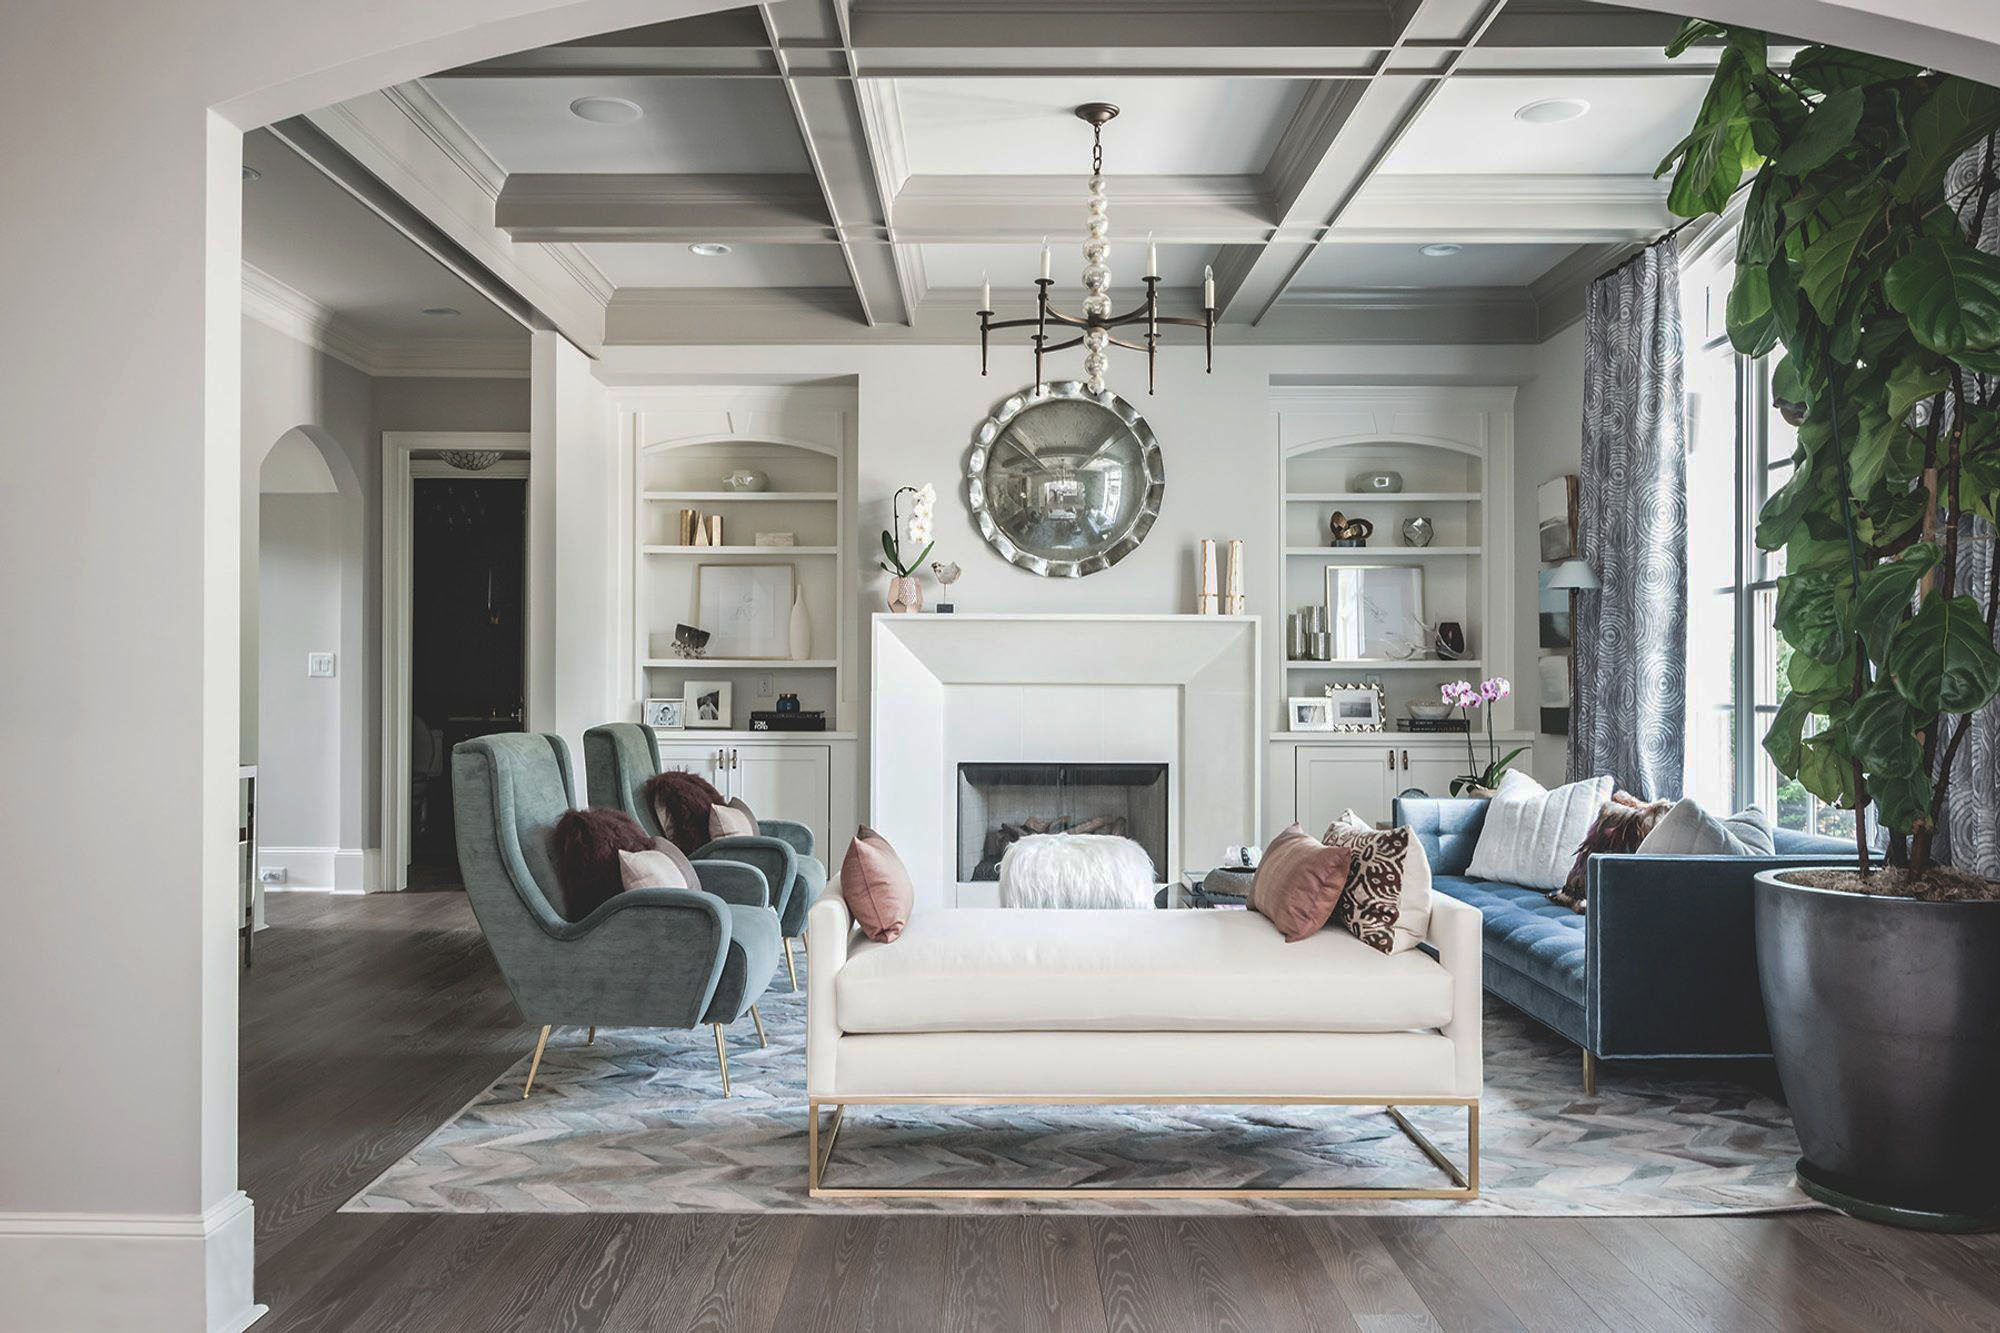 transition style rug in a modern sitting room